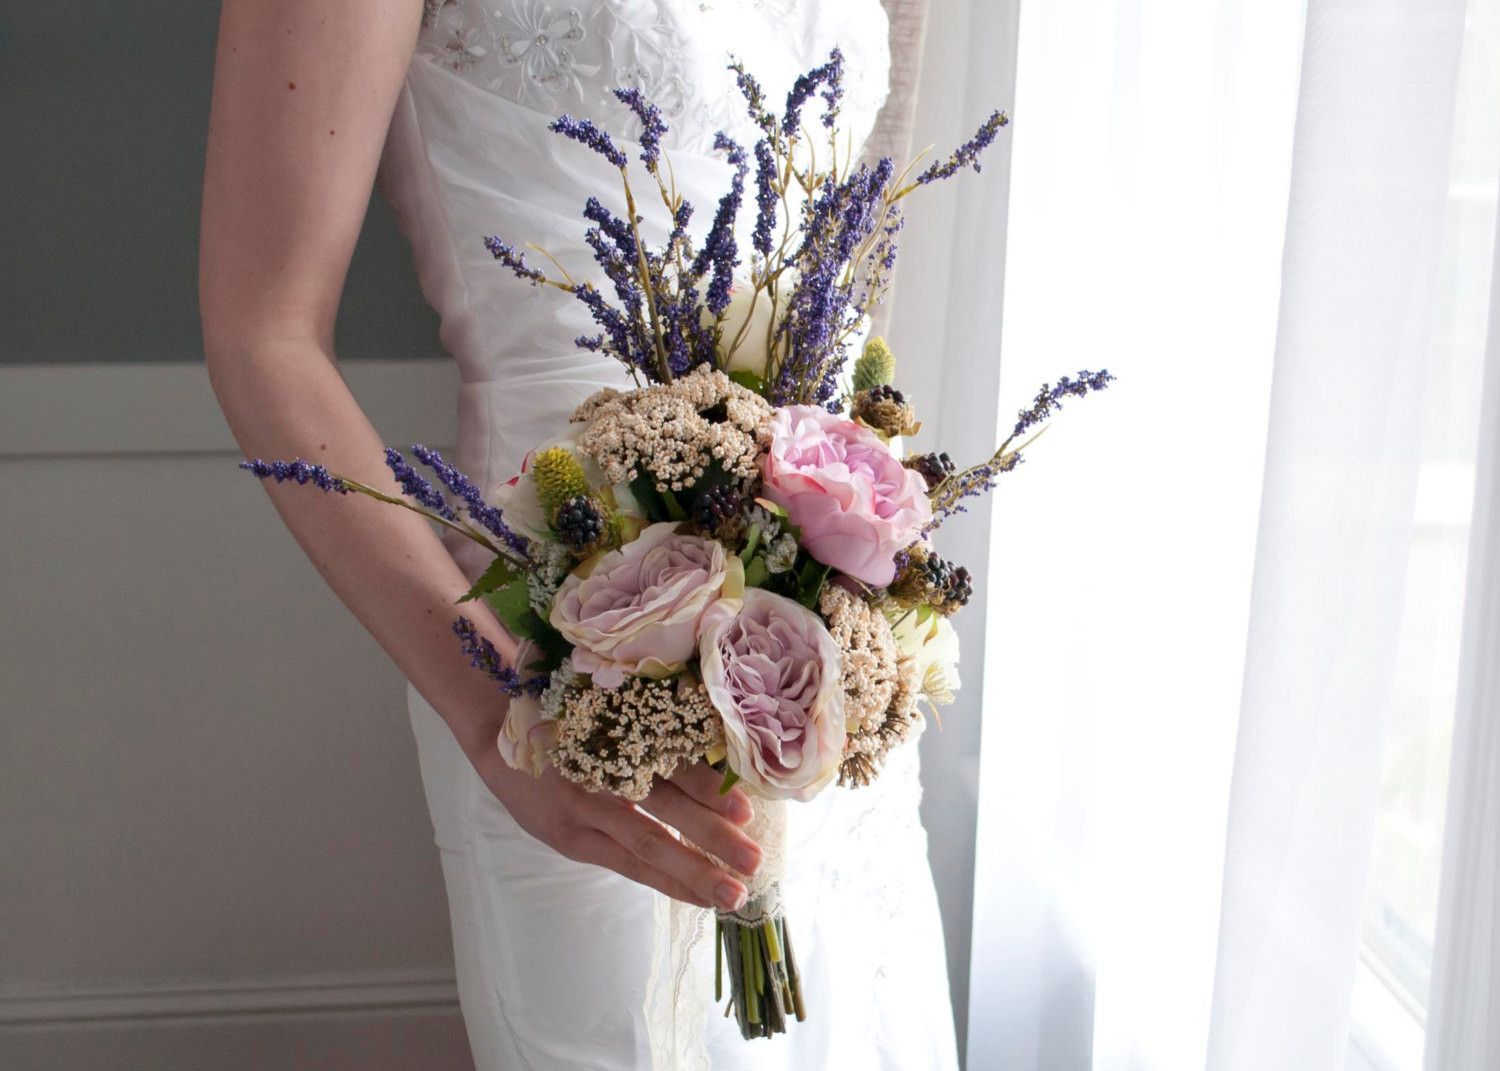 Bohemian Wedding Bouquet Rose And Lavender Wedding Bouquet Bohemian Wedding Bouquet Wedding Flower Arrangements Lavender Wedding Bouquet